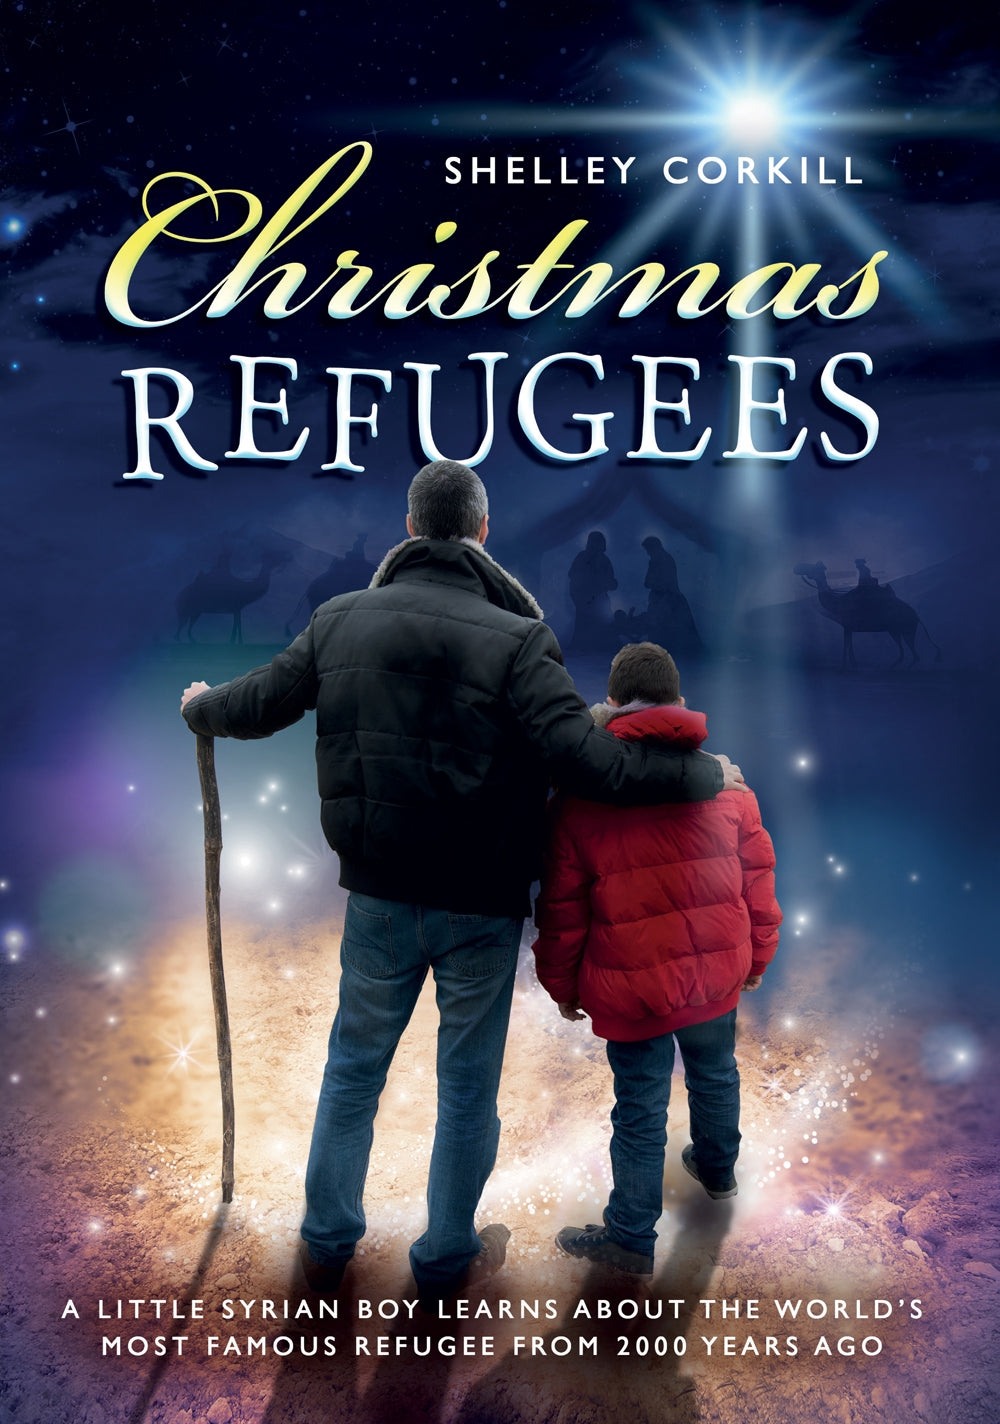 Christmas Refugees Book + Cd Licence New For 2019Christmas Refugees Book + Cd Licence New For 2019